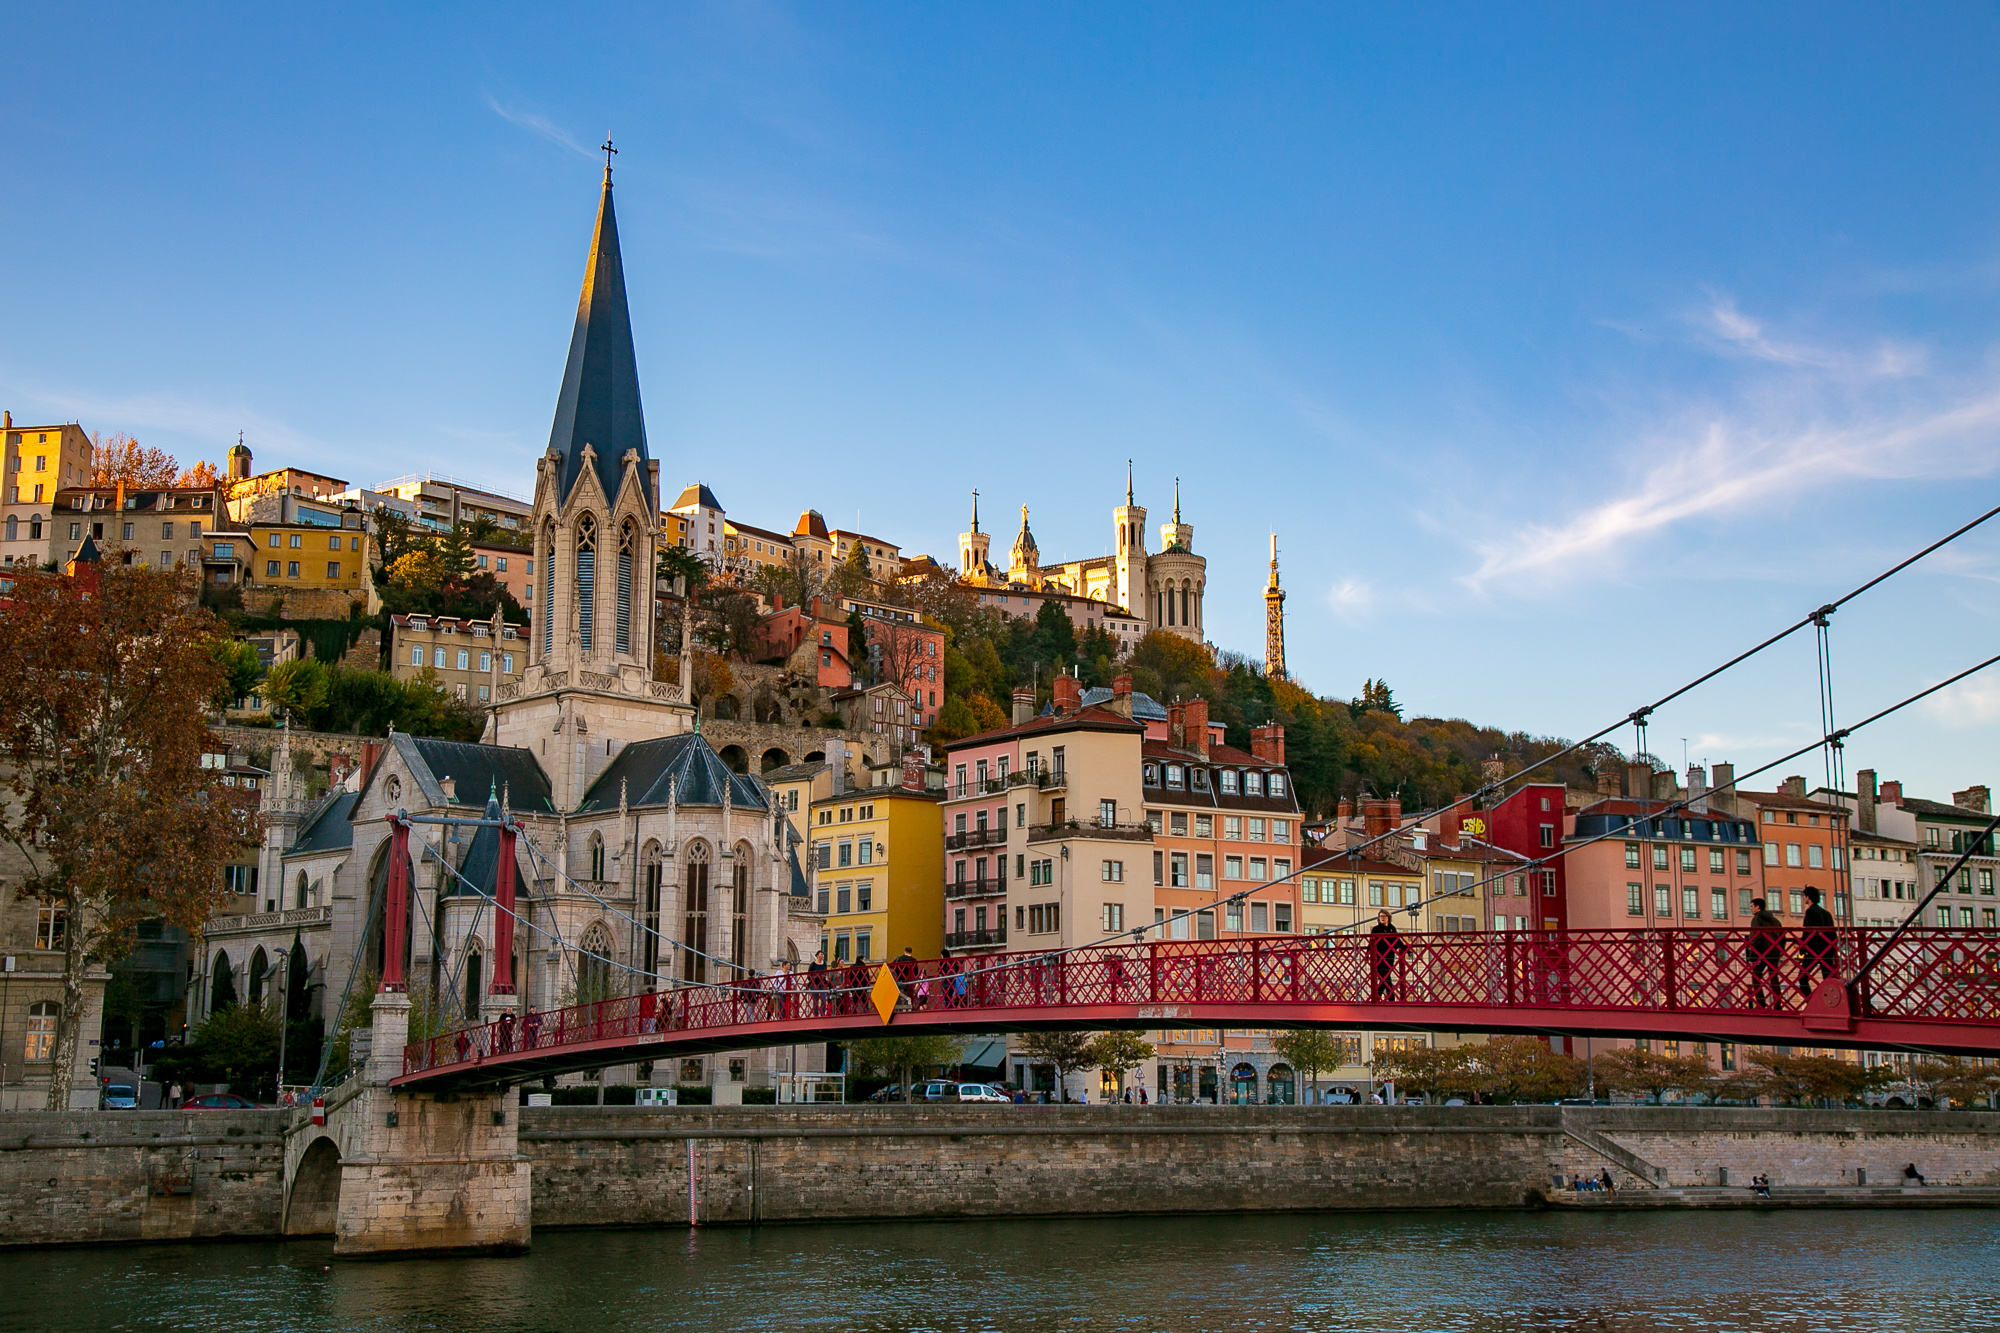 This historic center of Lyon, France — a UNESCO World Heritage site © Kim I. Mott, all rights reserved